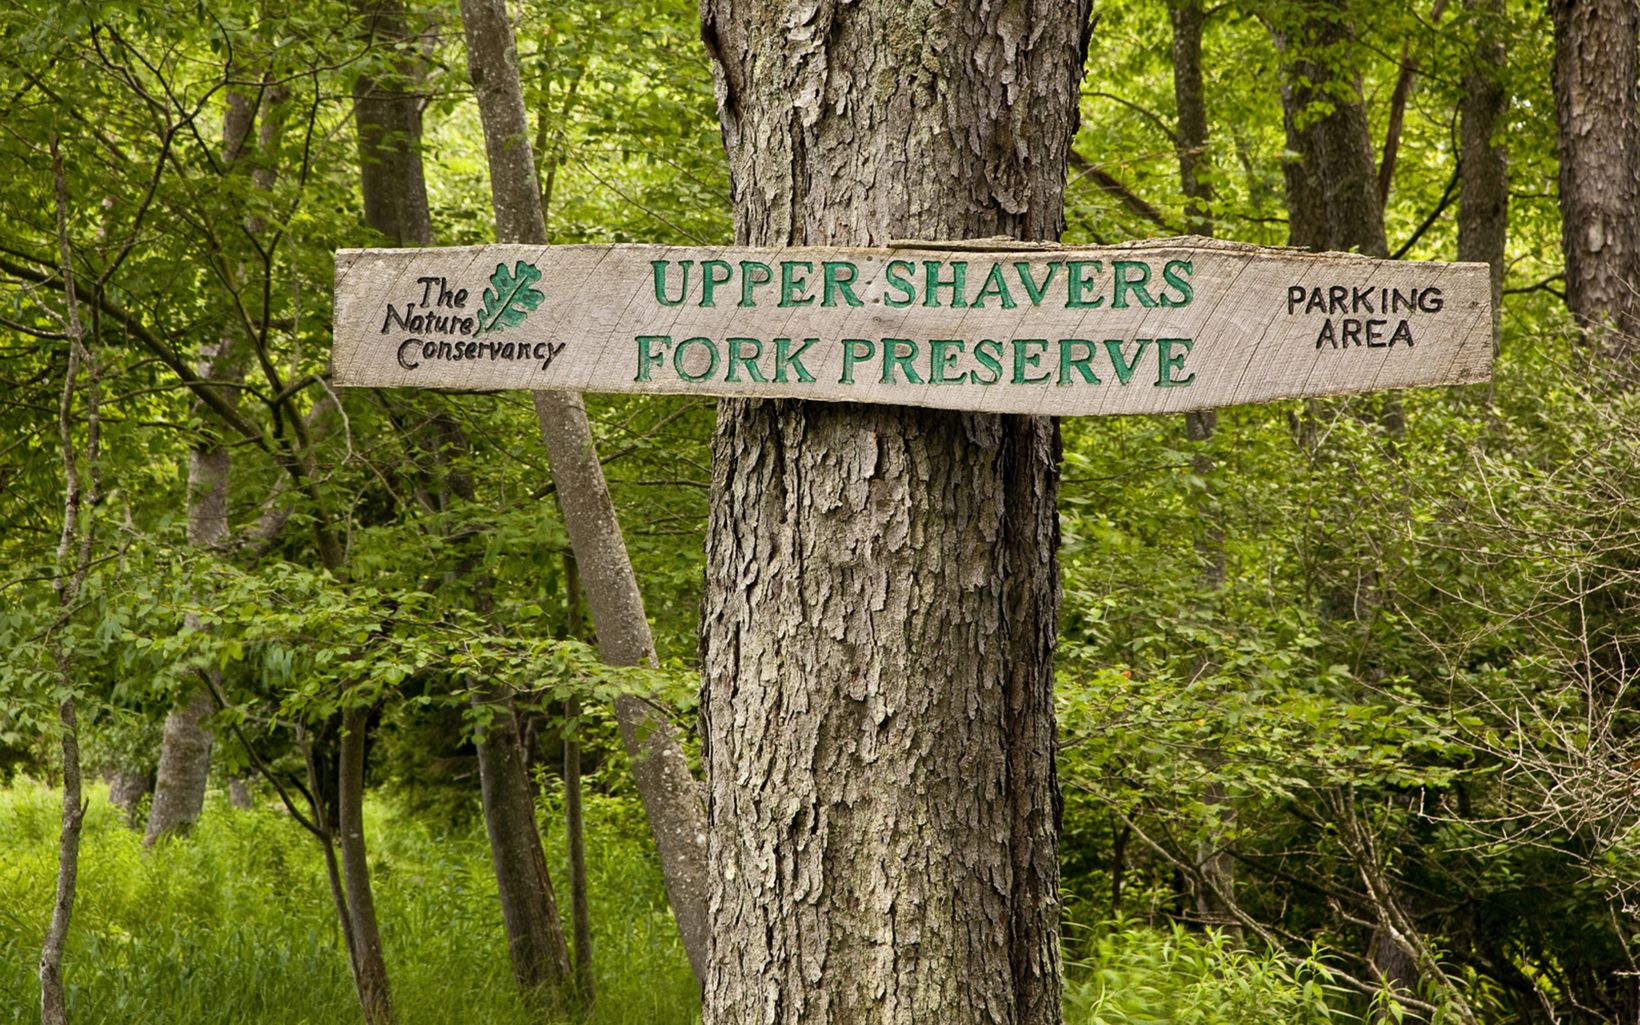 The Upper Shavers Fork Preserve on Cheat Mountain.